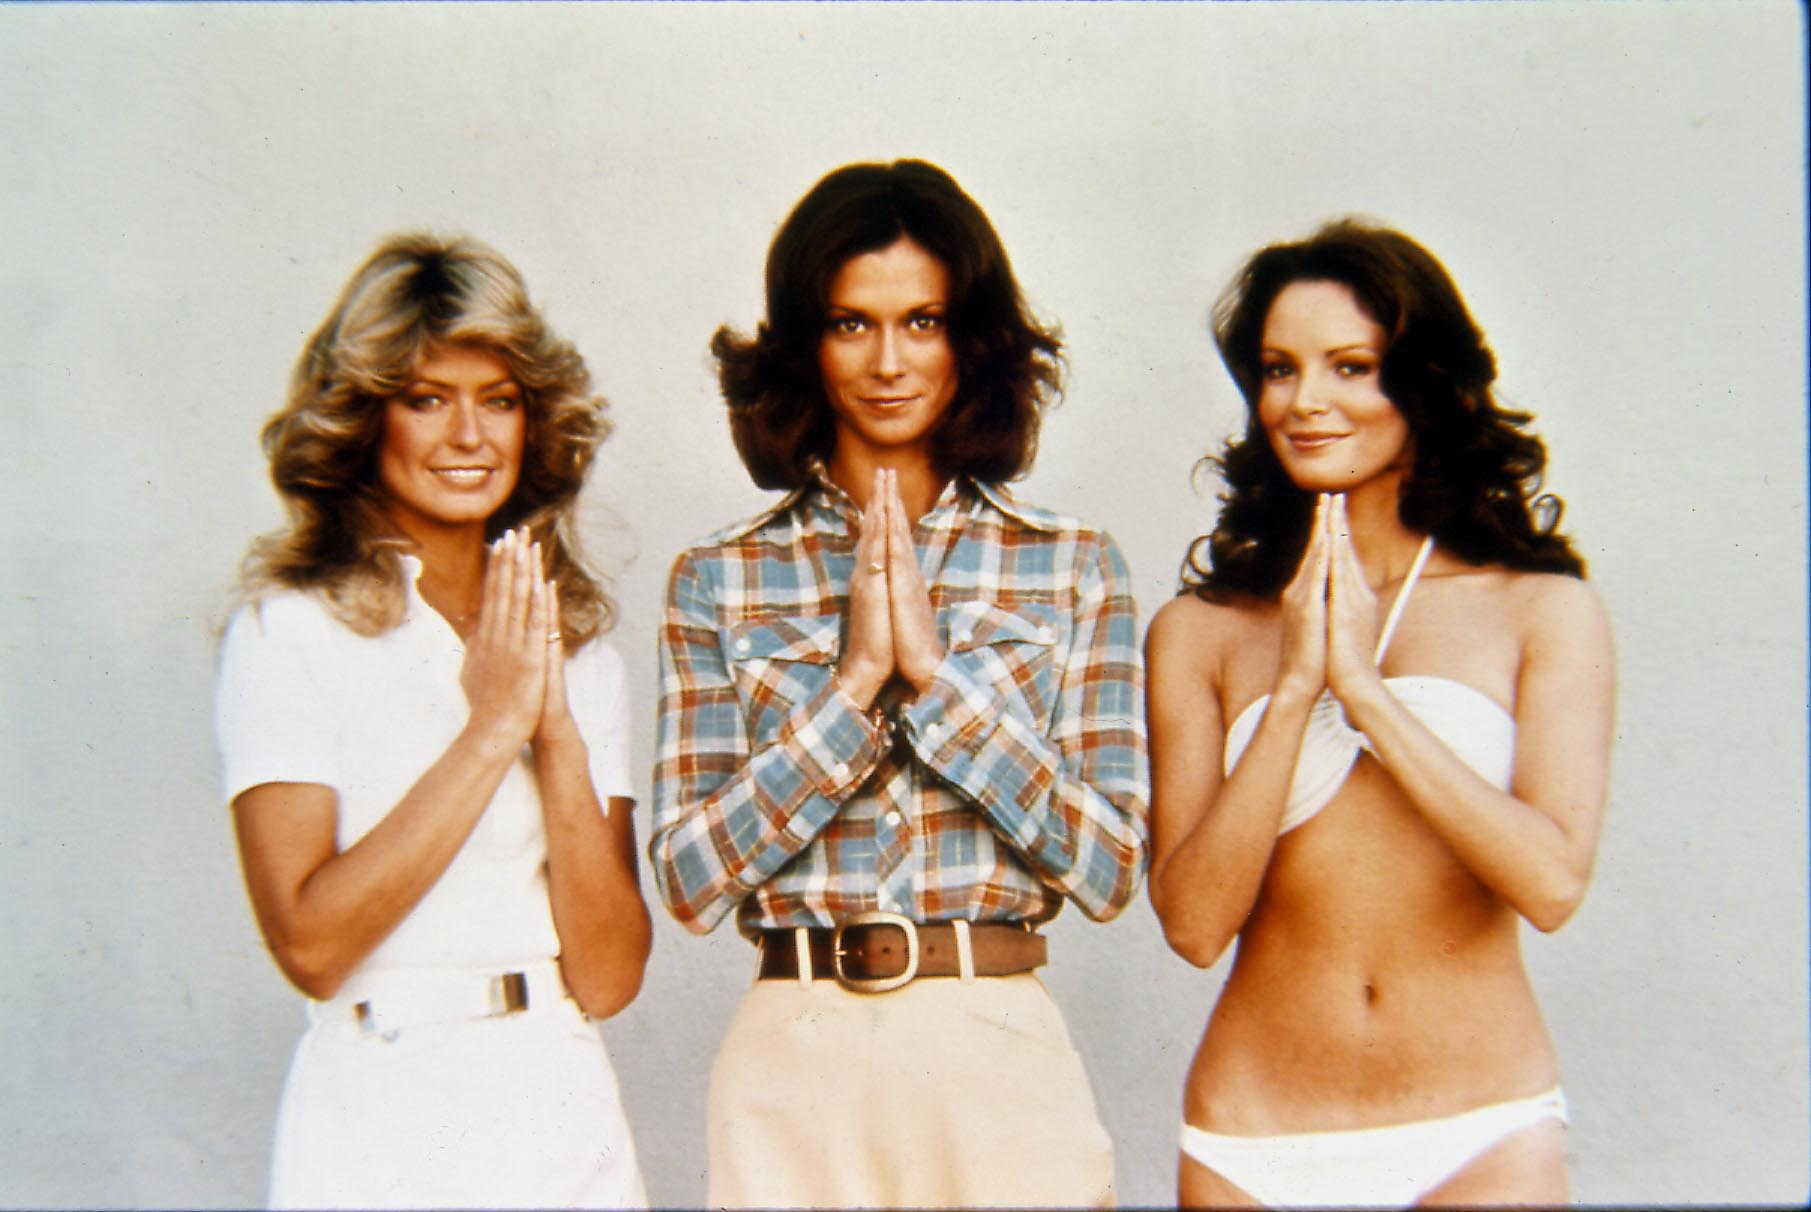 FARRAH FAWCETT FROM CHARLIES ANGELS,W// CHARLIE AND OTHER ANGELS PUBLICITY PHOTO